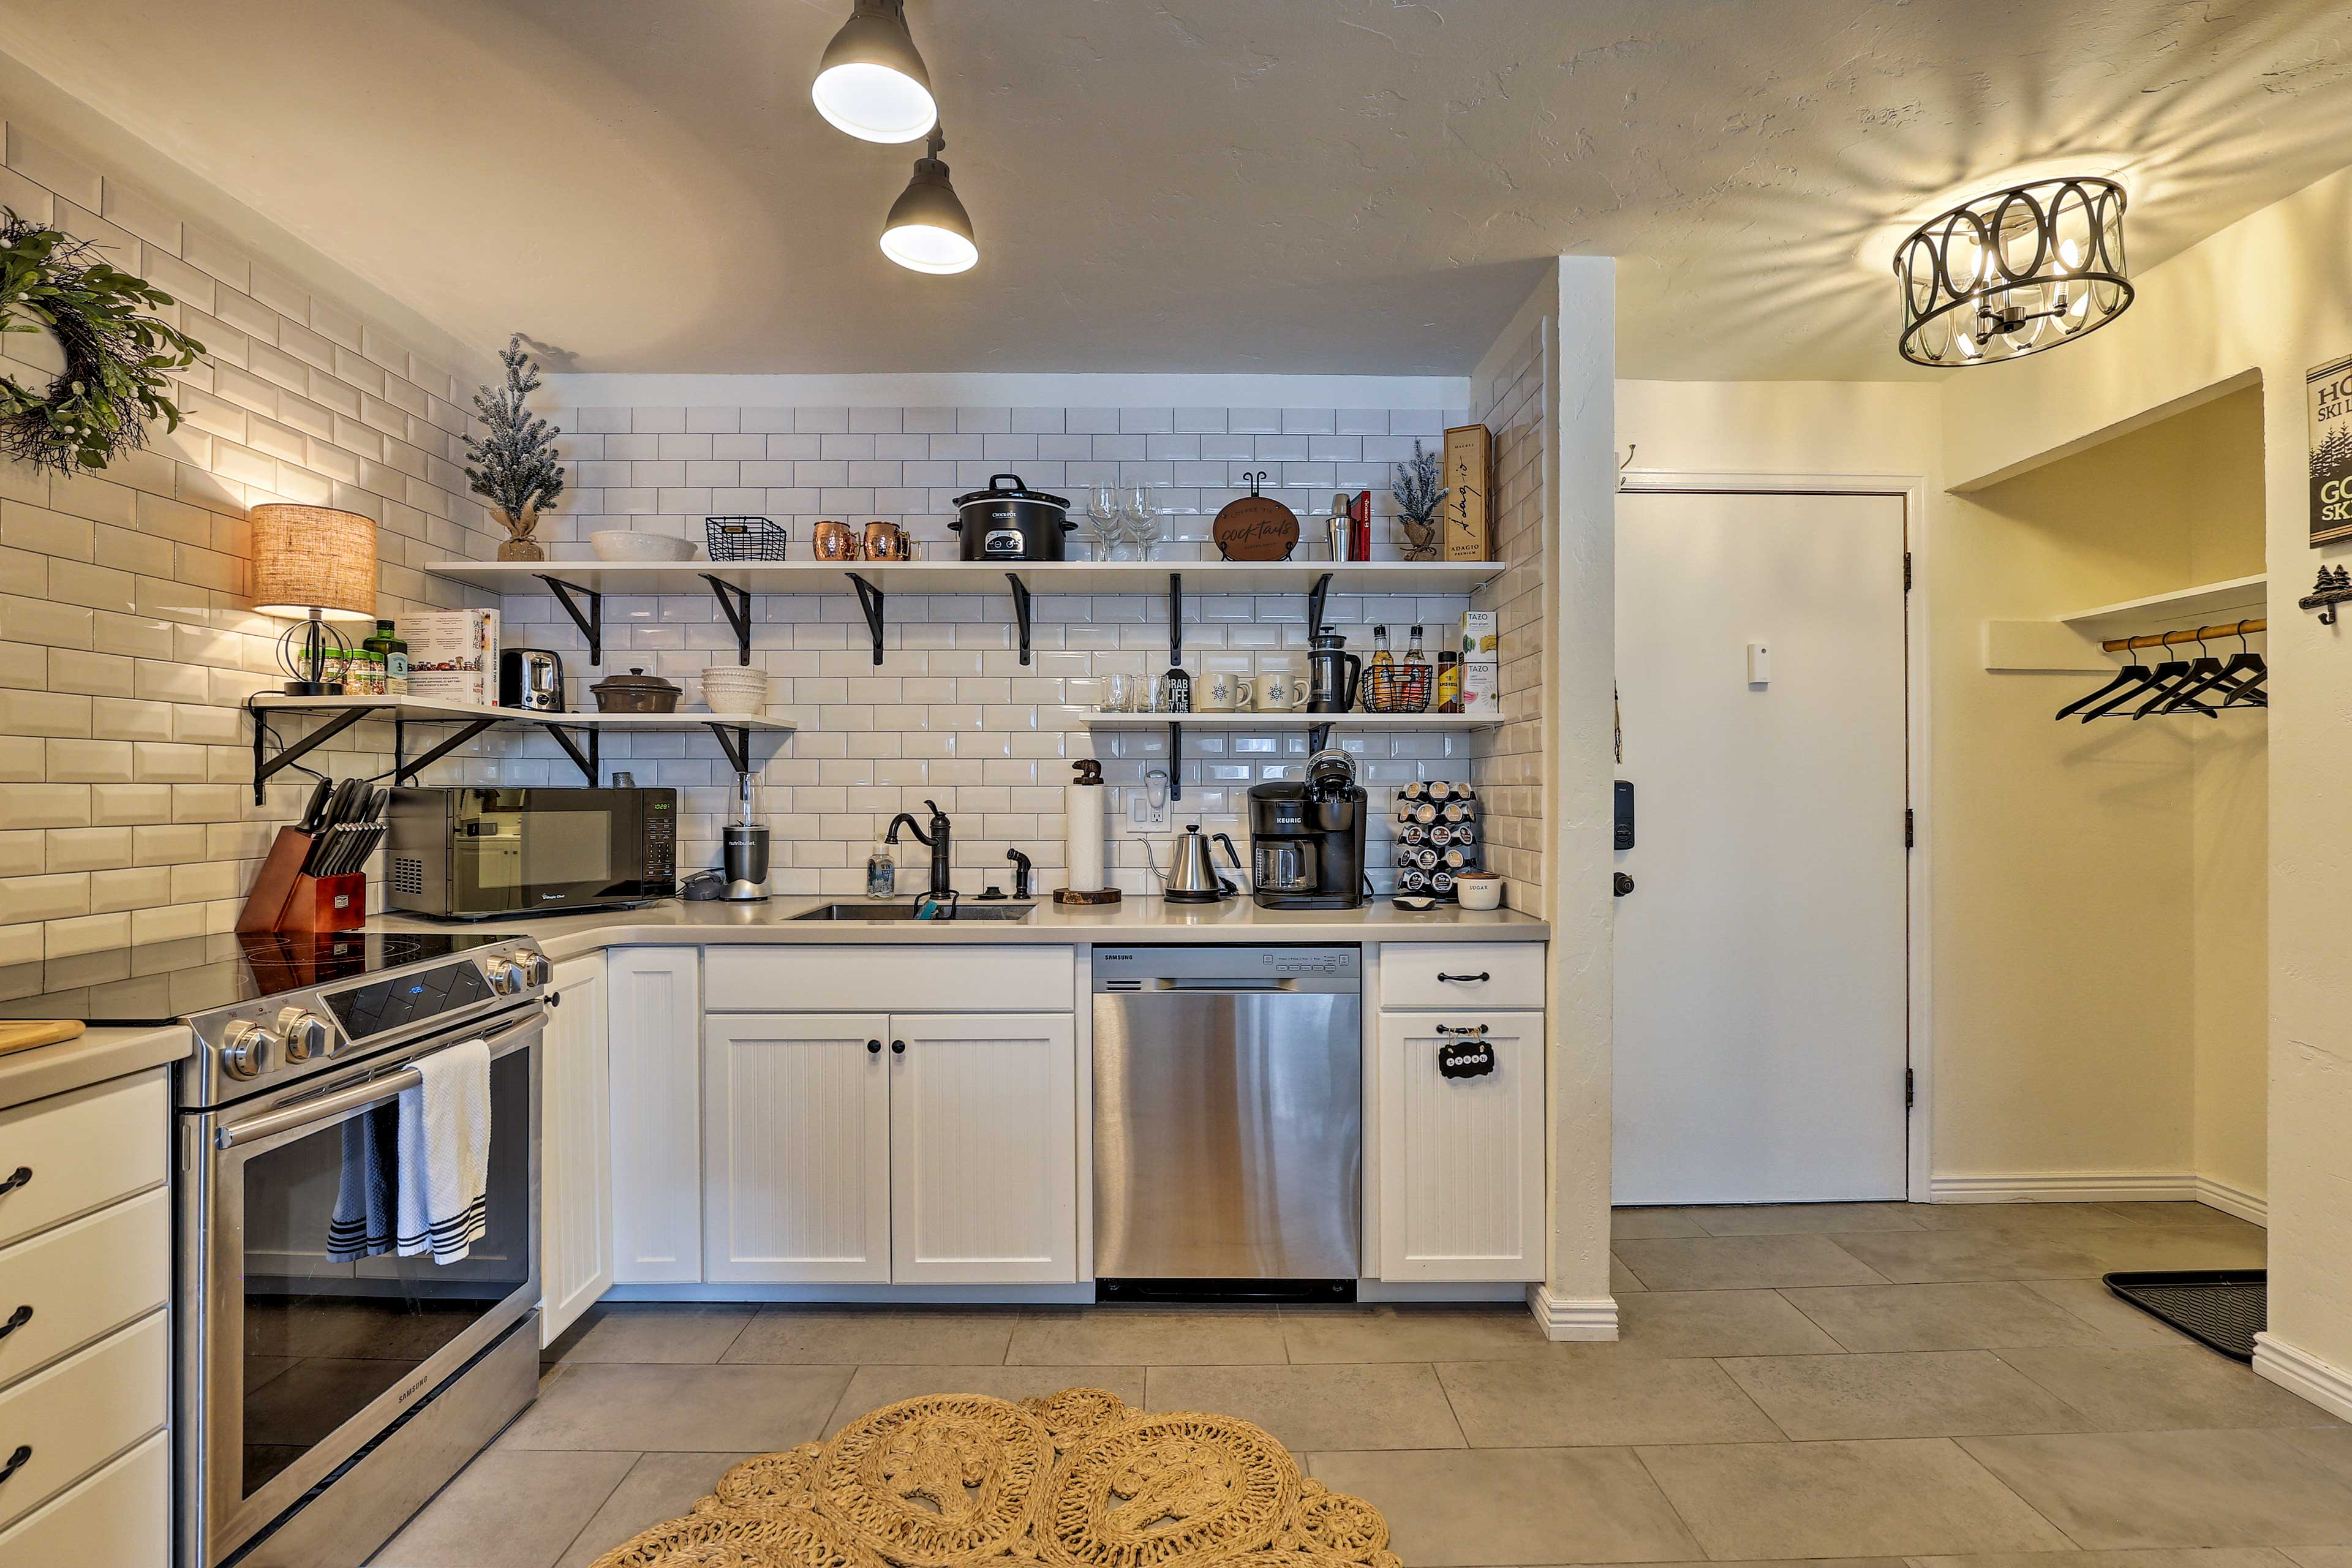 This modern, updated kitchen is fully equipped.